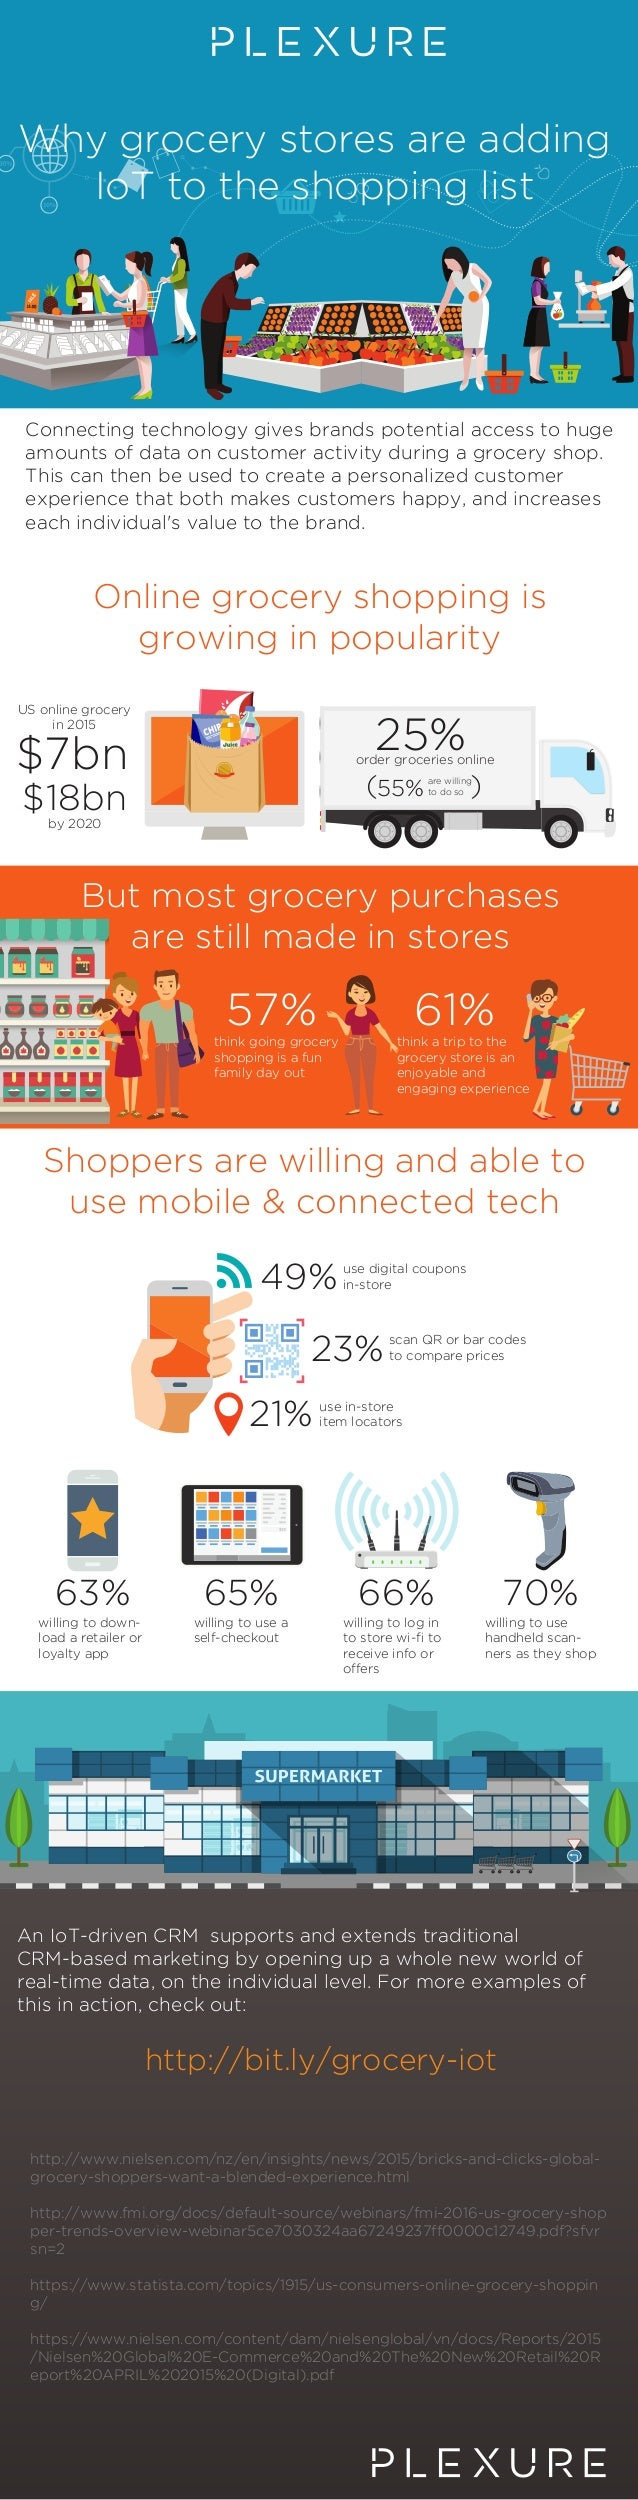 US online grocery in 2015 $7bn by 2020 $18bn think a trip to the grocery store is an enjoyable and engaging experience 61%...